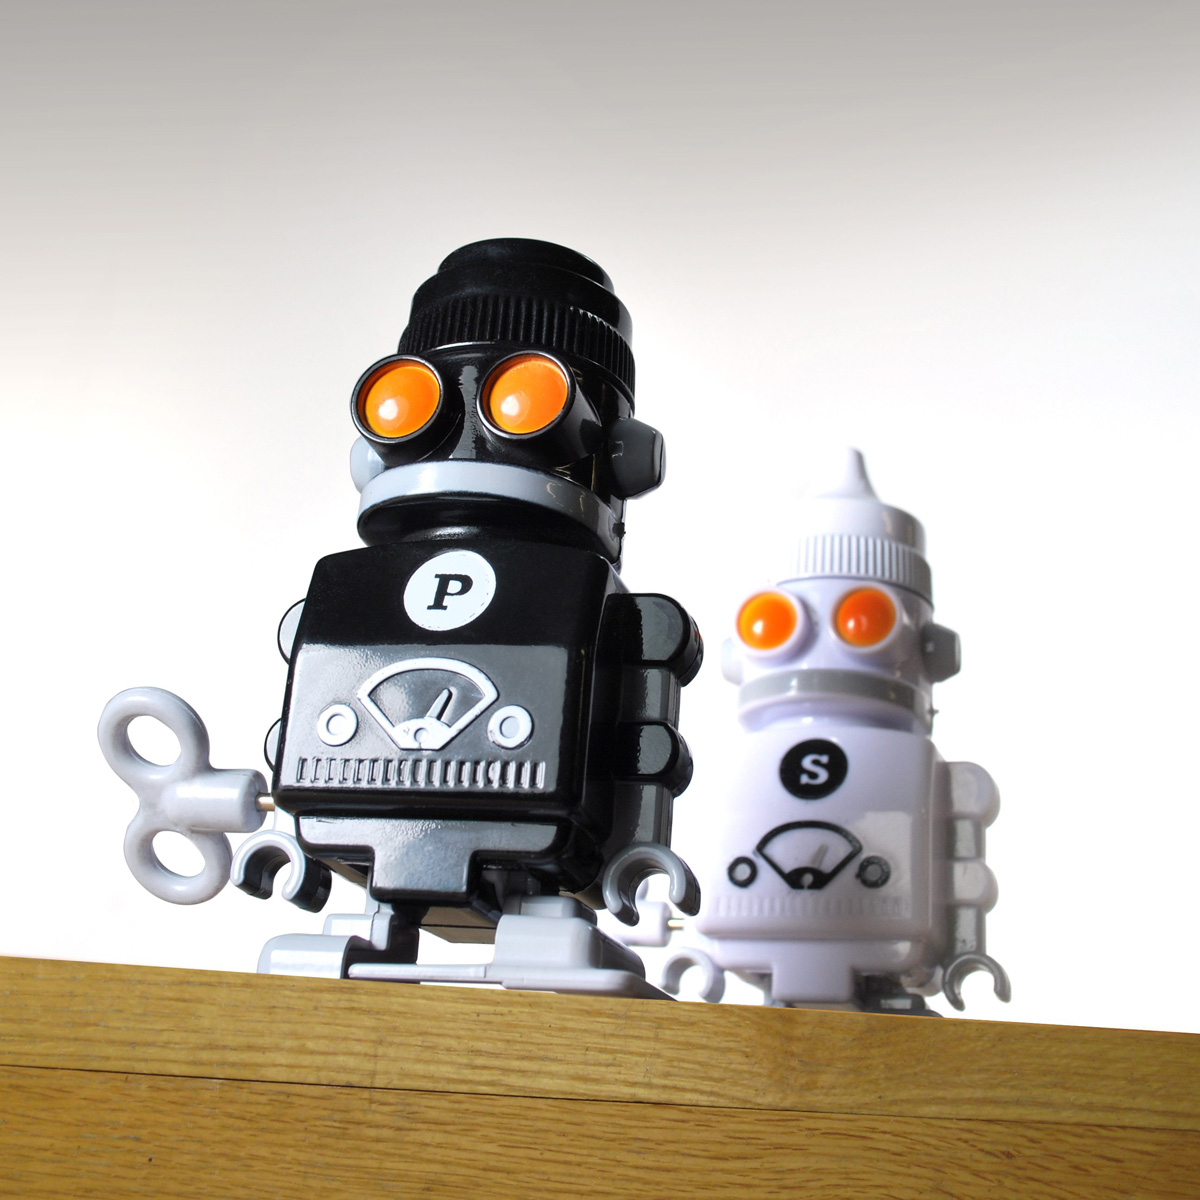 Wind up salt and pepper robots the green head Salt and pepper robots